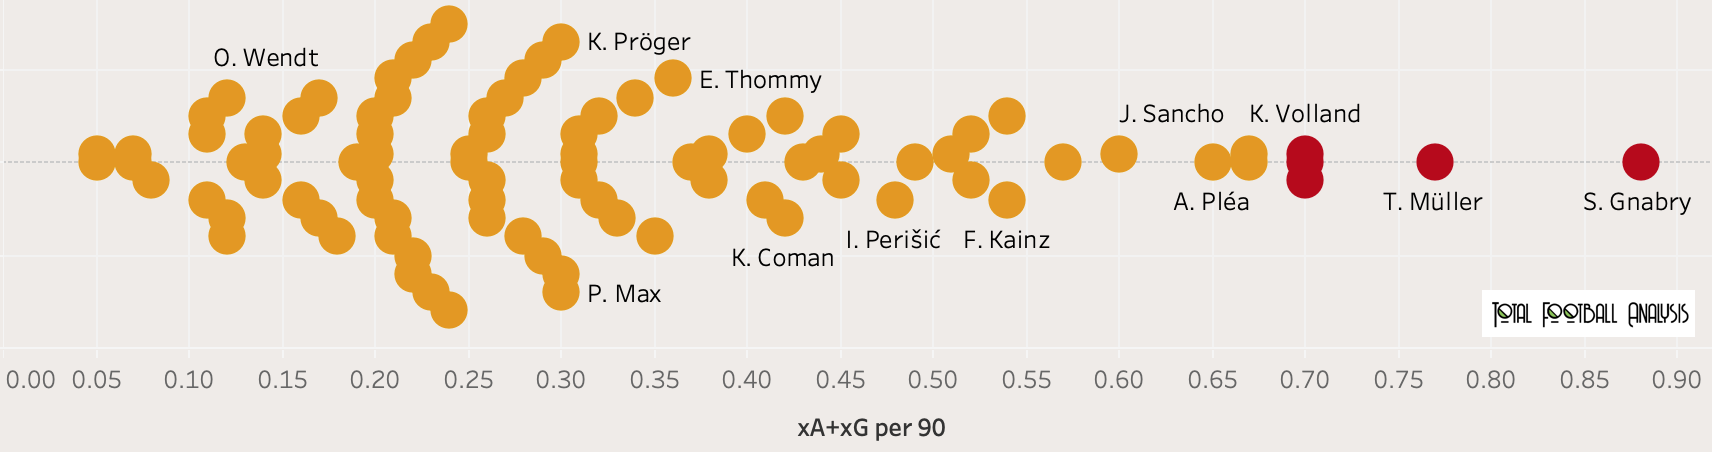 Finding the best wingers in Bundesliga - data analysis statistics